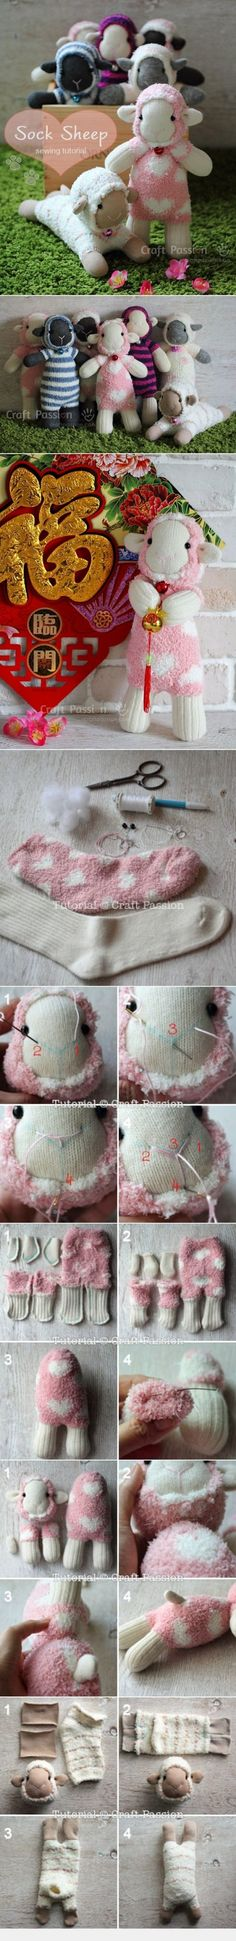 Sew Sock Sheep From Craftpassion                                                                                                                                                                                 More